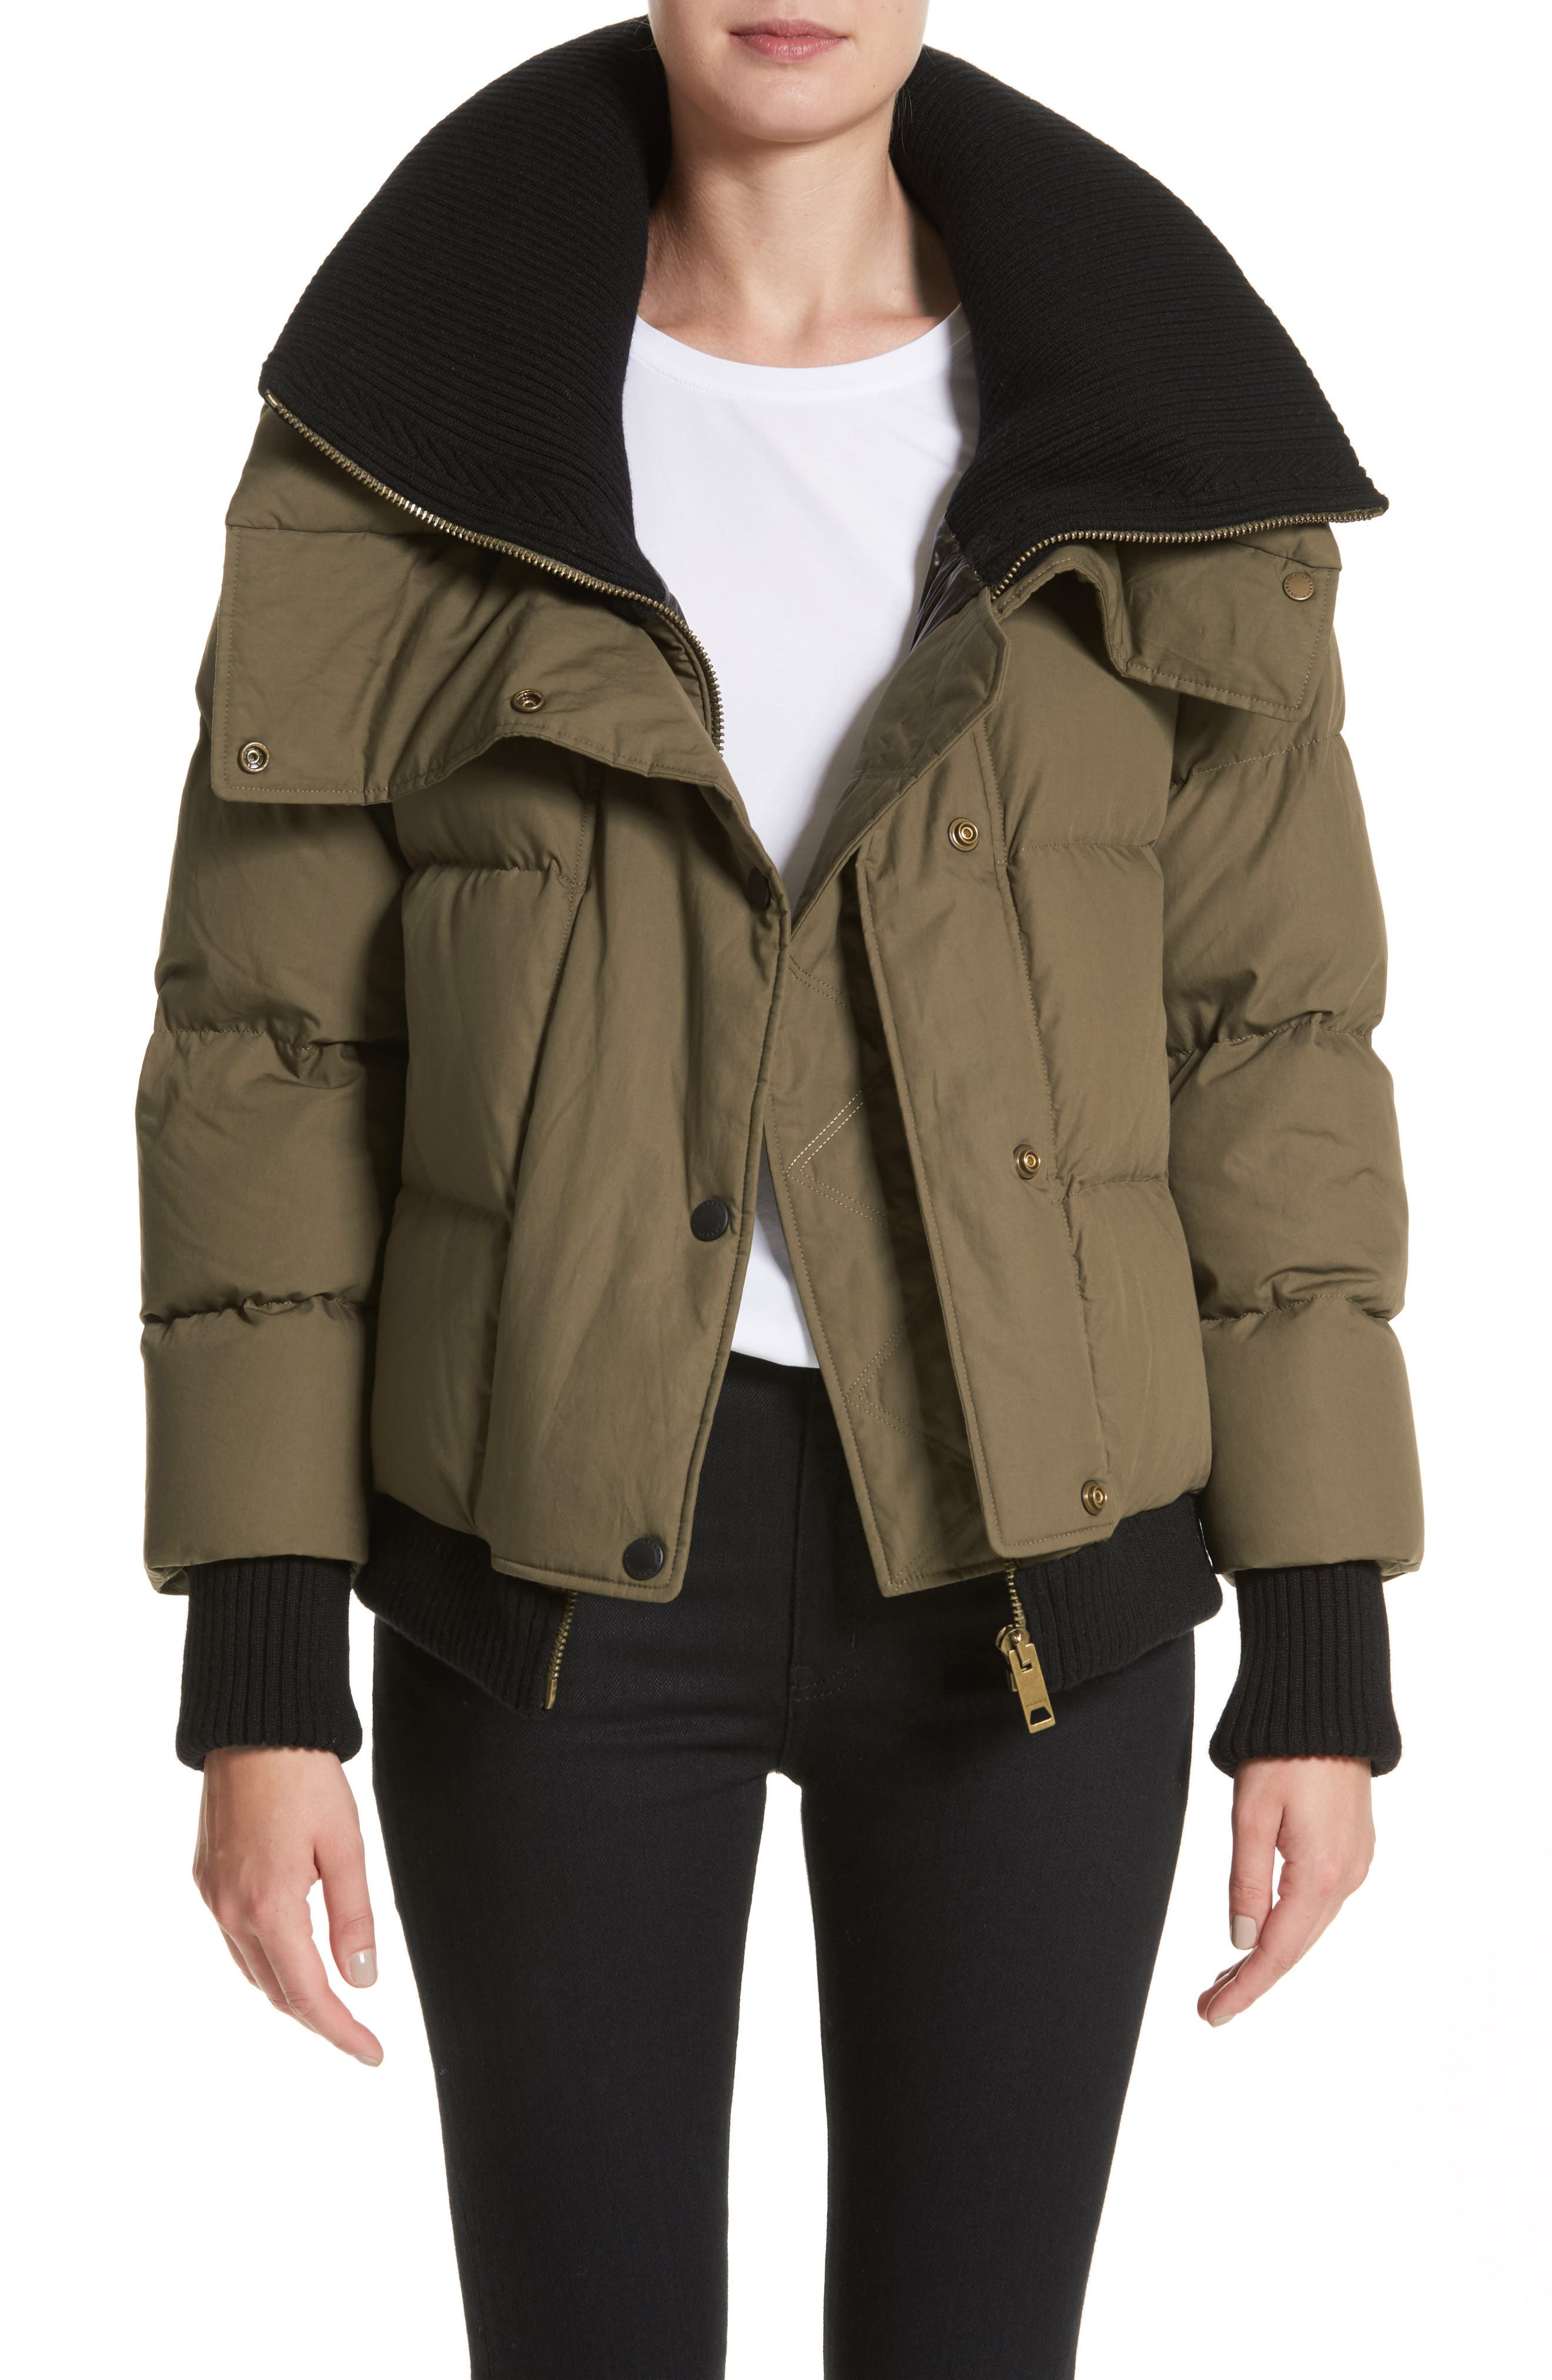 Alternate Image 1 Selected - Burberry Greenlawkn Puffer Jacket